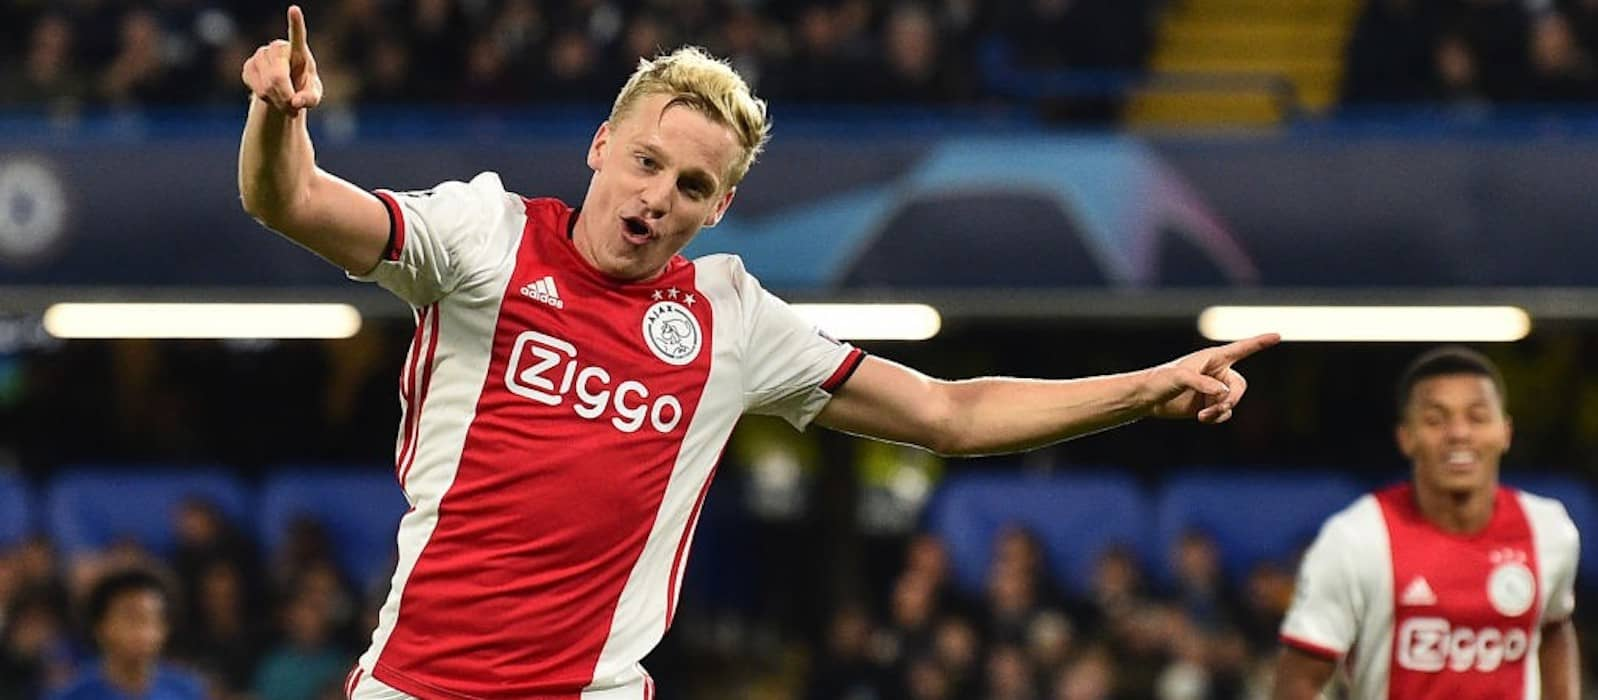 Manchester United face stiff competition for Donny van de Beek